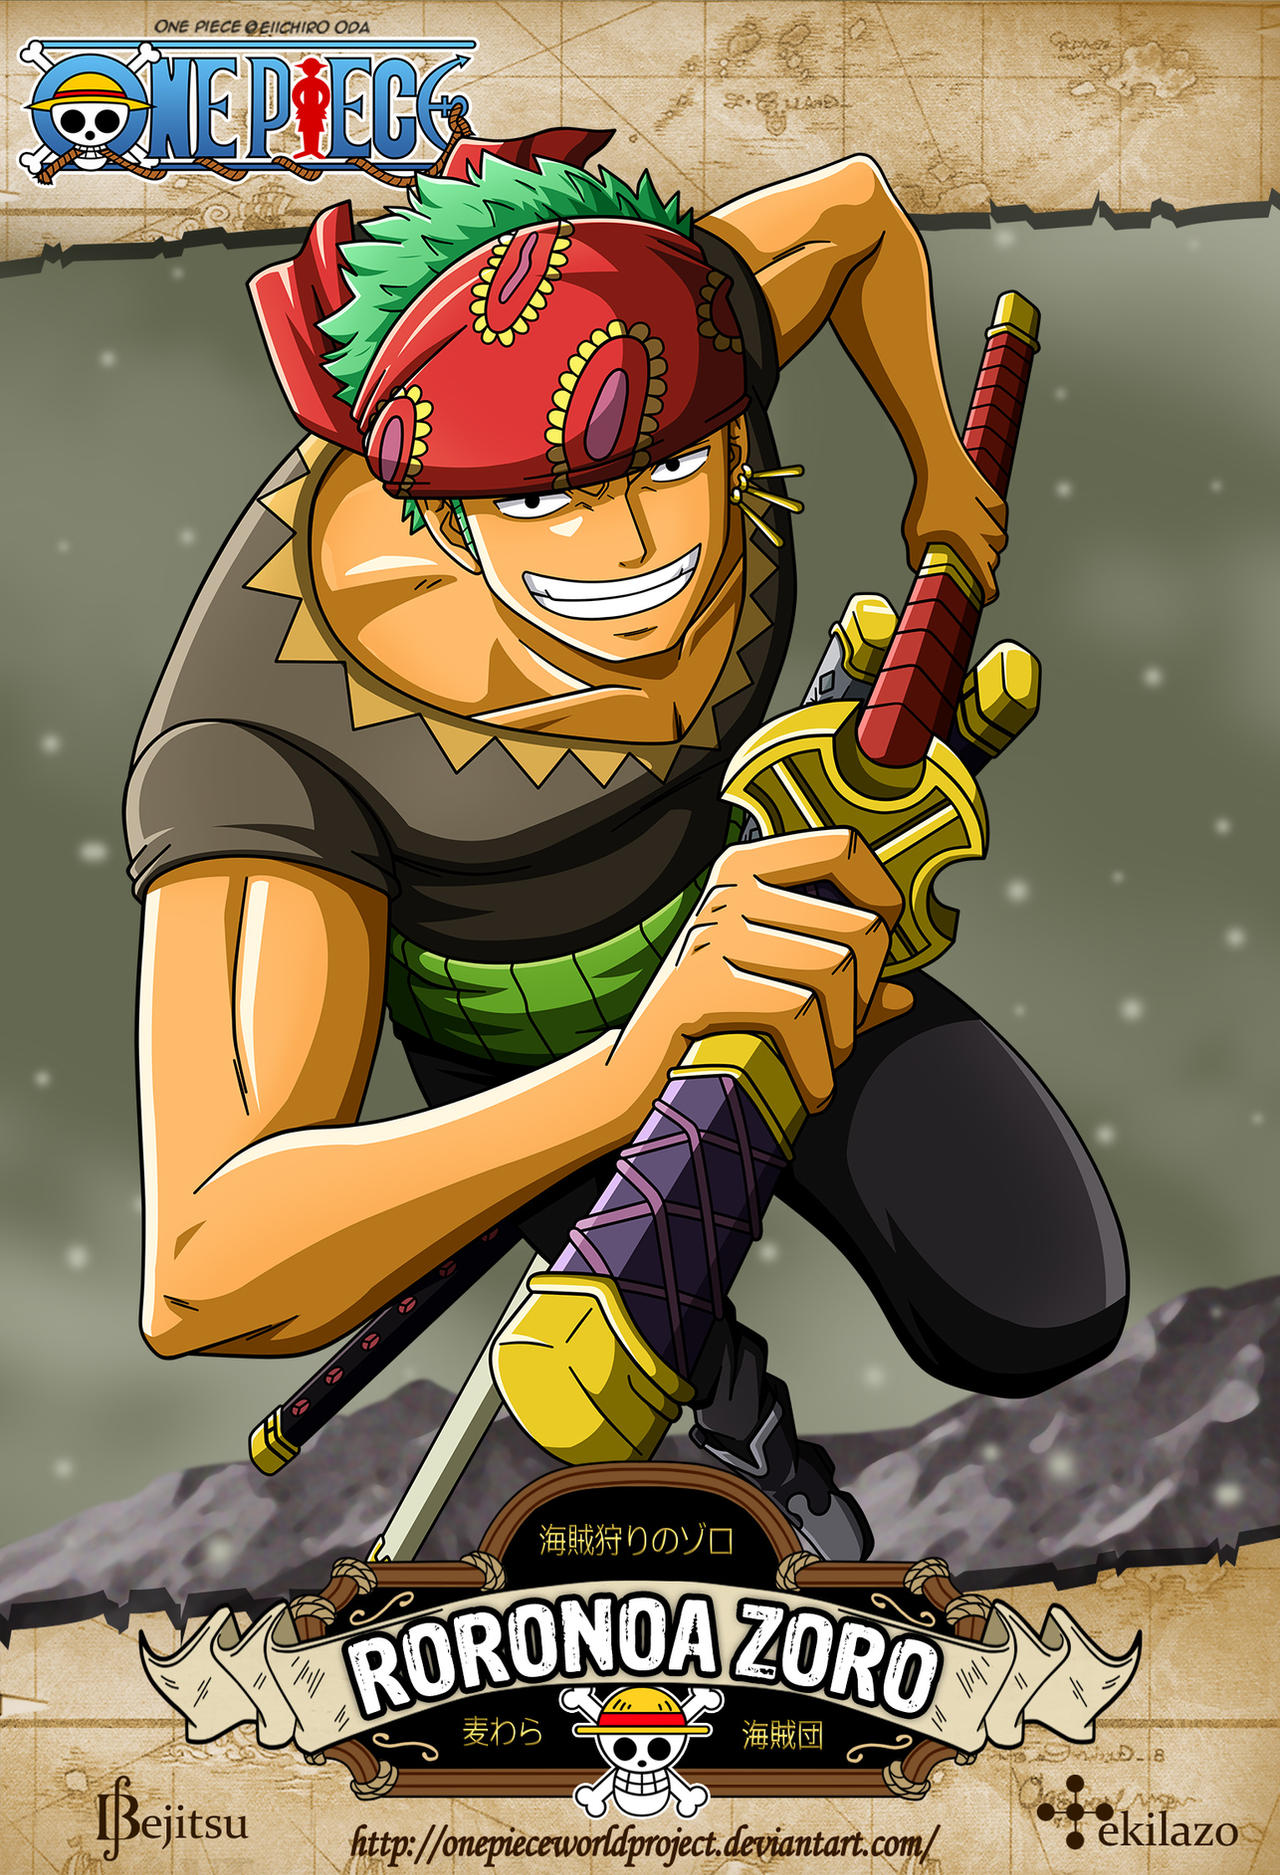 One Piece Chopper New World One Piece - Roronoa Zo...